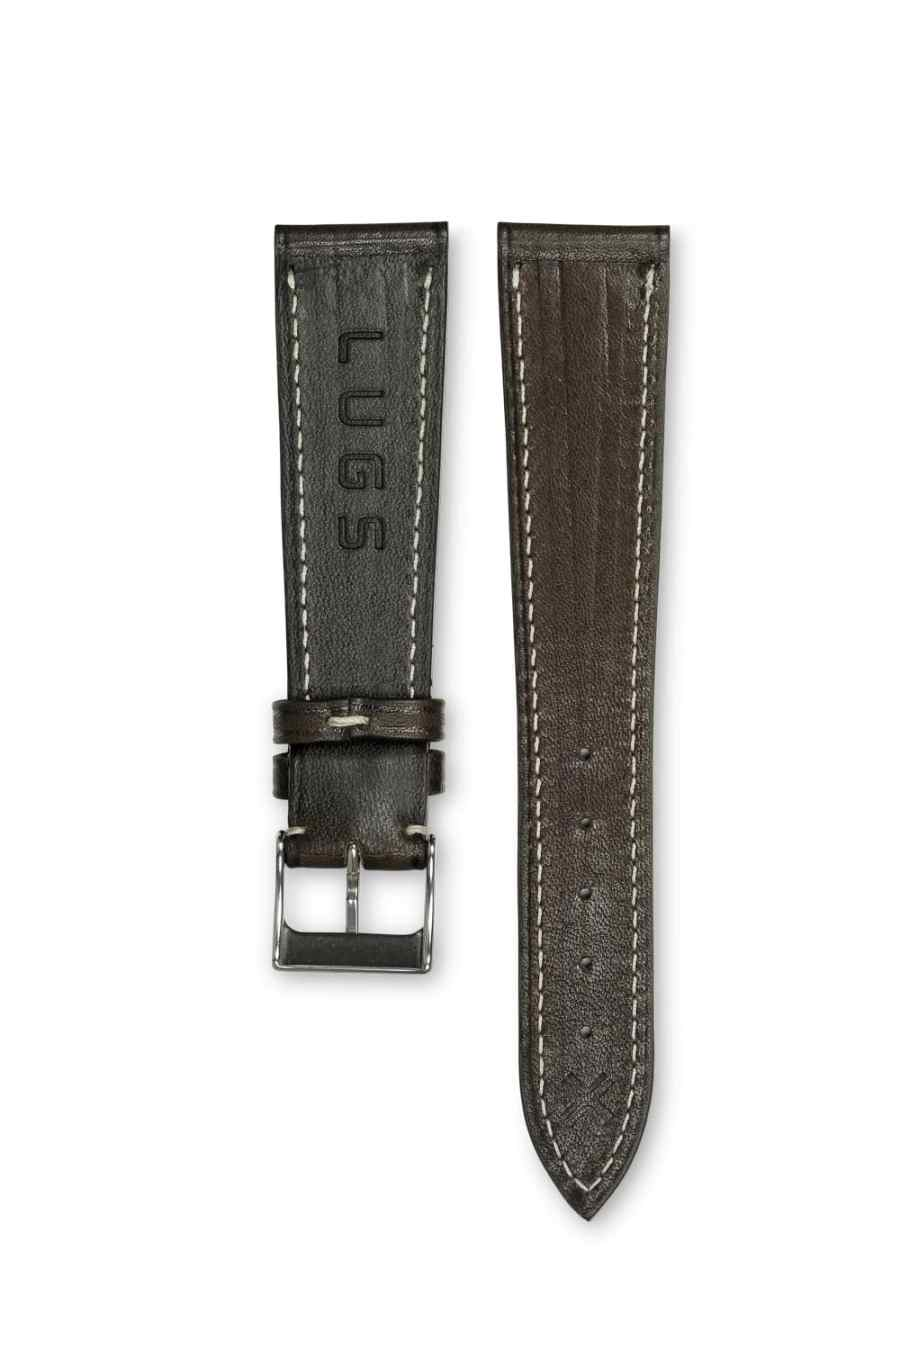 Smooth Classic chocolate brown leather watch strap - cream stitching - LUGS brand